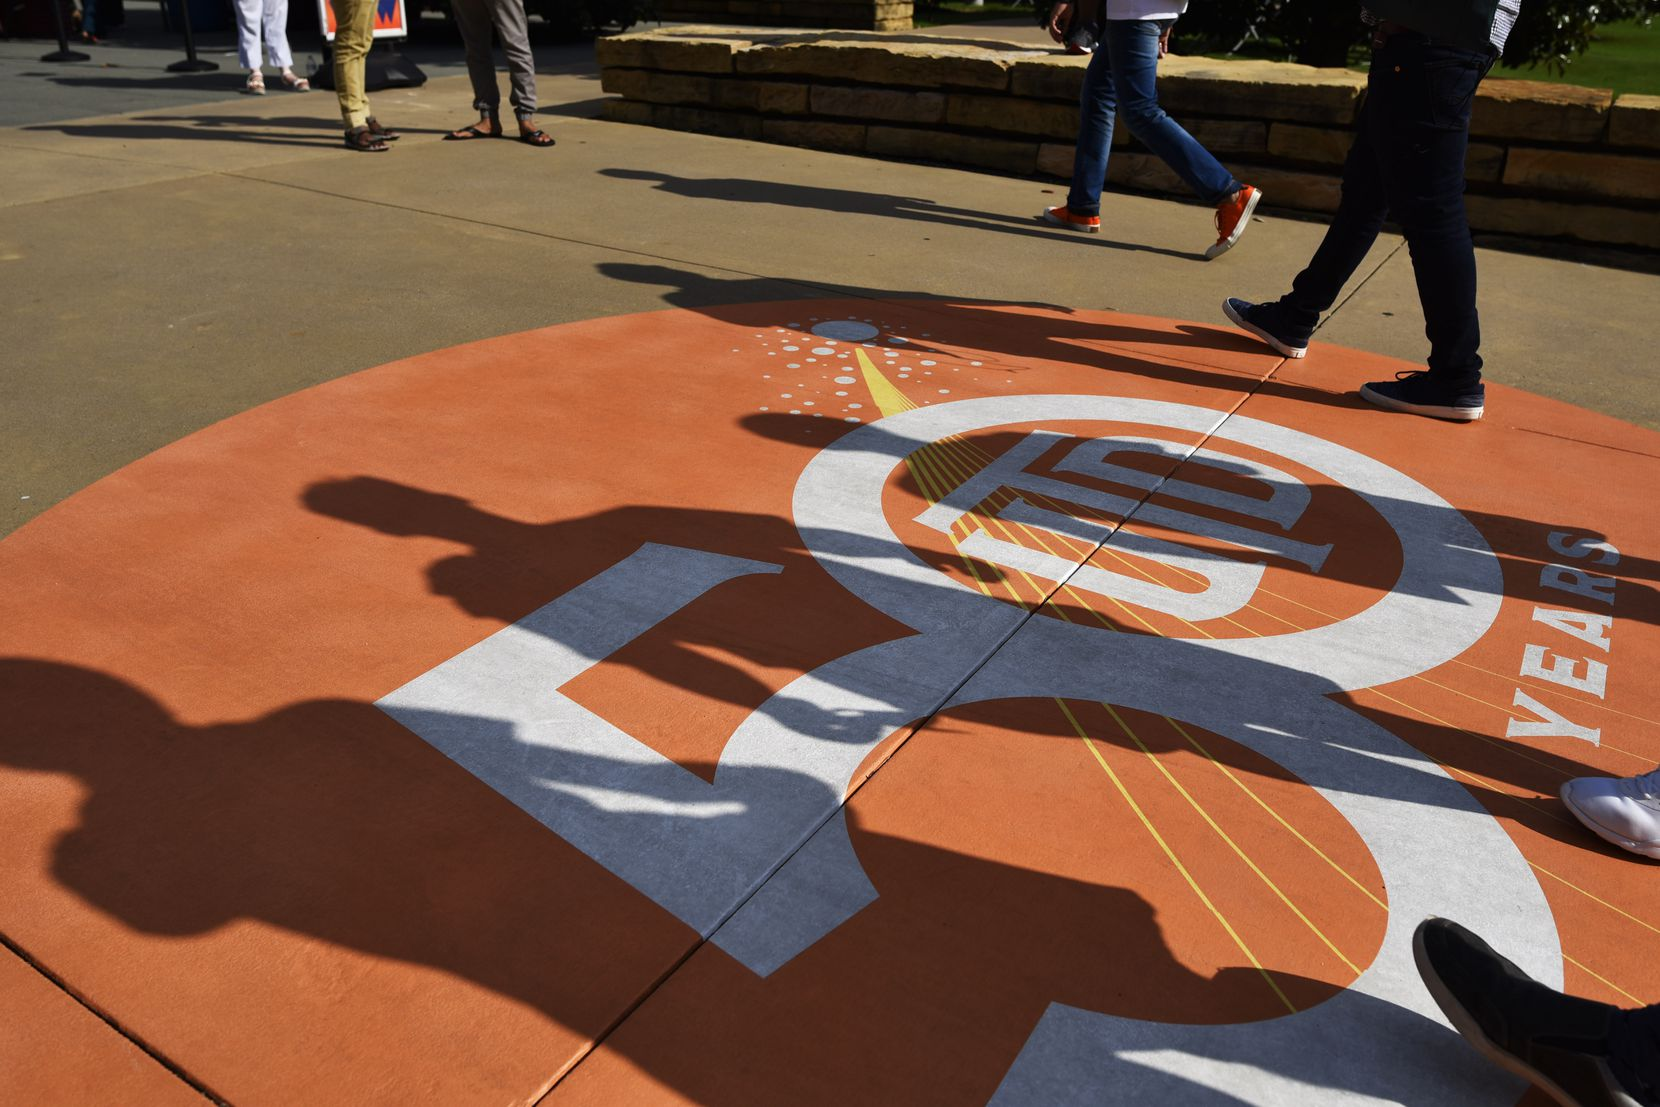 Shadows from freshman walk over a 50th anniversary logo celebrating 50 years of the University of Texas at Dallas, Sunday Aug. 18, 2019 in Richardson.